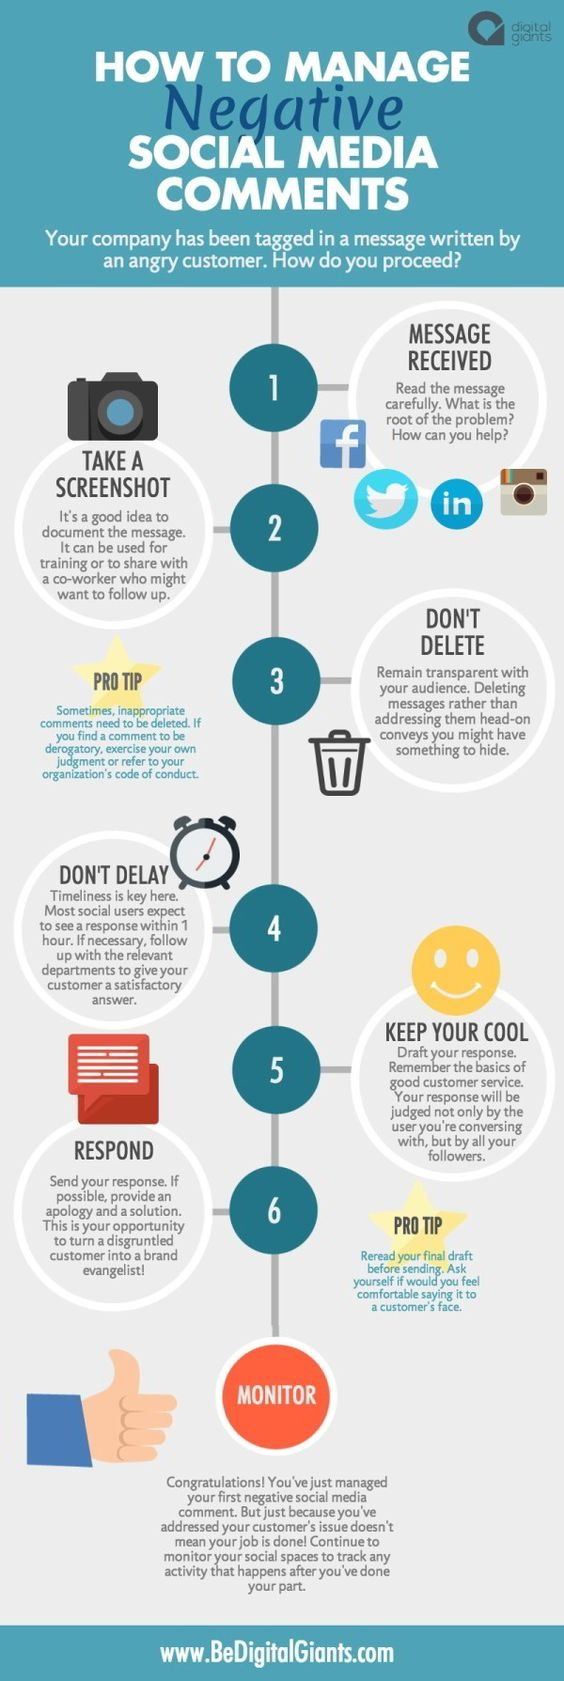 How to manage negative #Social_Media comments #Viral #SMM #Marketing #Infographic